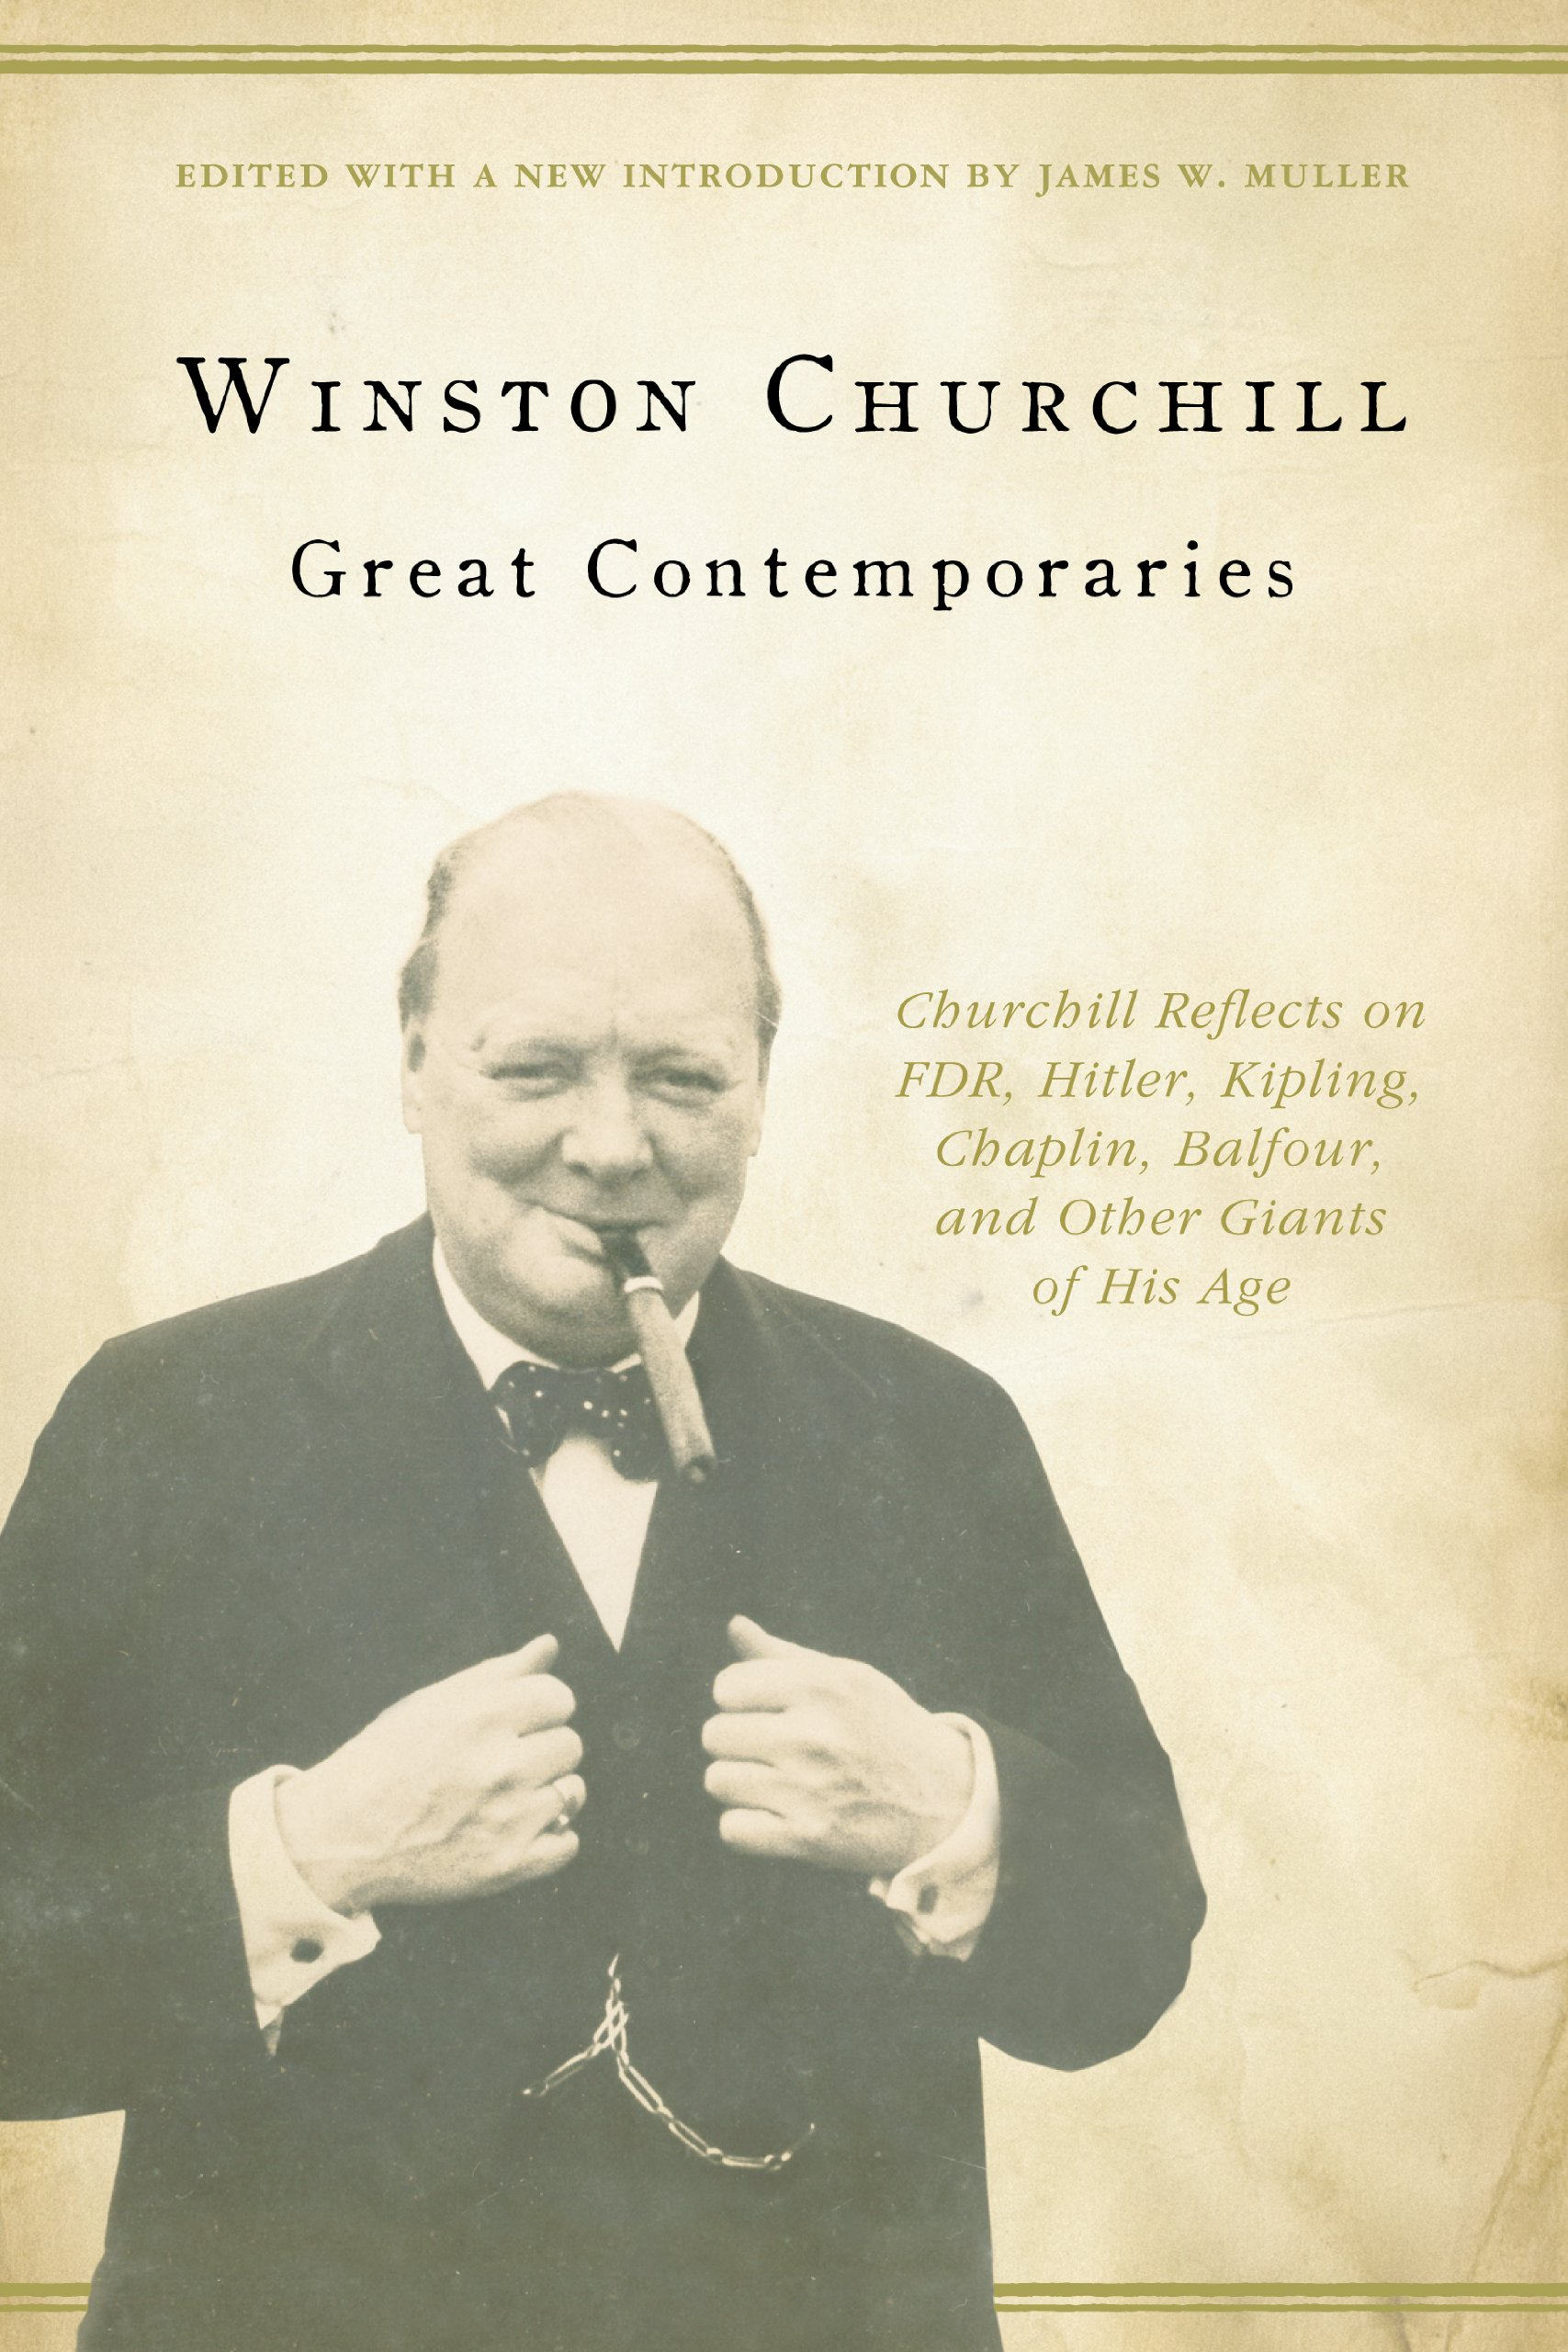 com great contemporaries churchill reflects on fdr com great contemporaries churchill reflects on fdr hitler kipling chaplin balfour and other giants of his age 9781935191995 winston